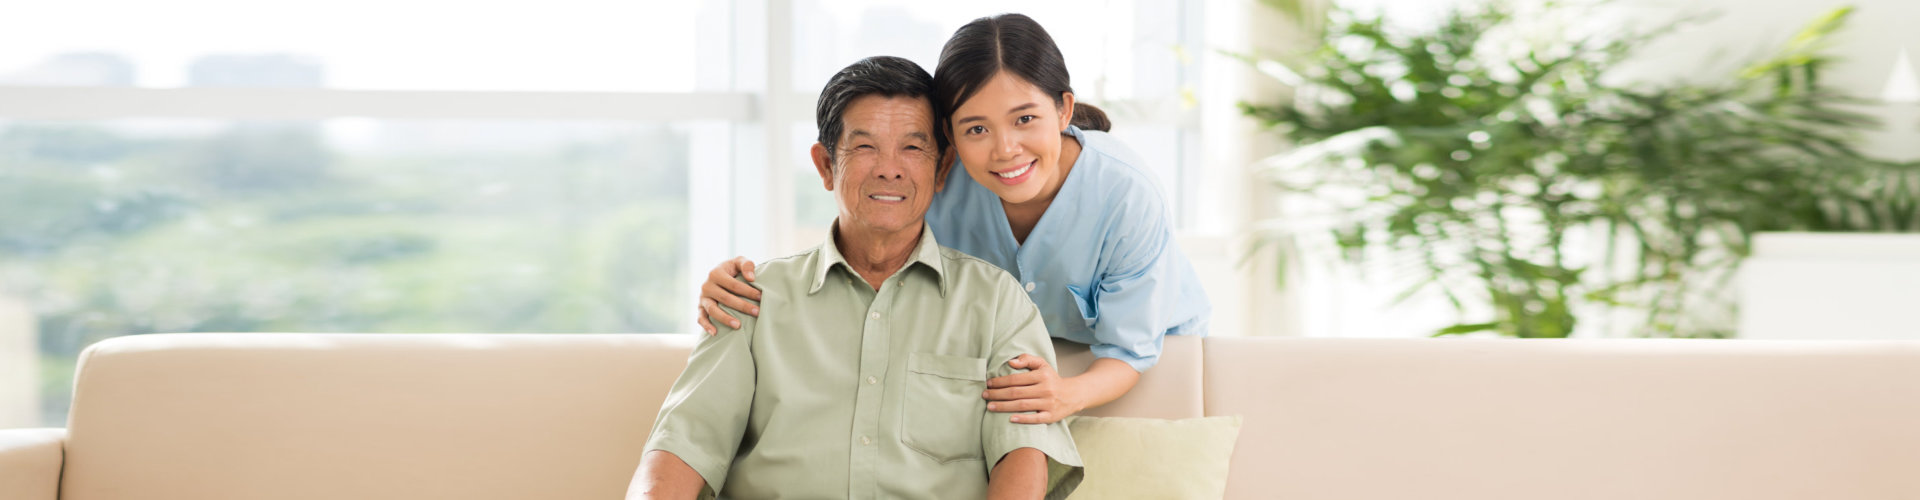 caregiver and senior on couch smiling